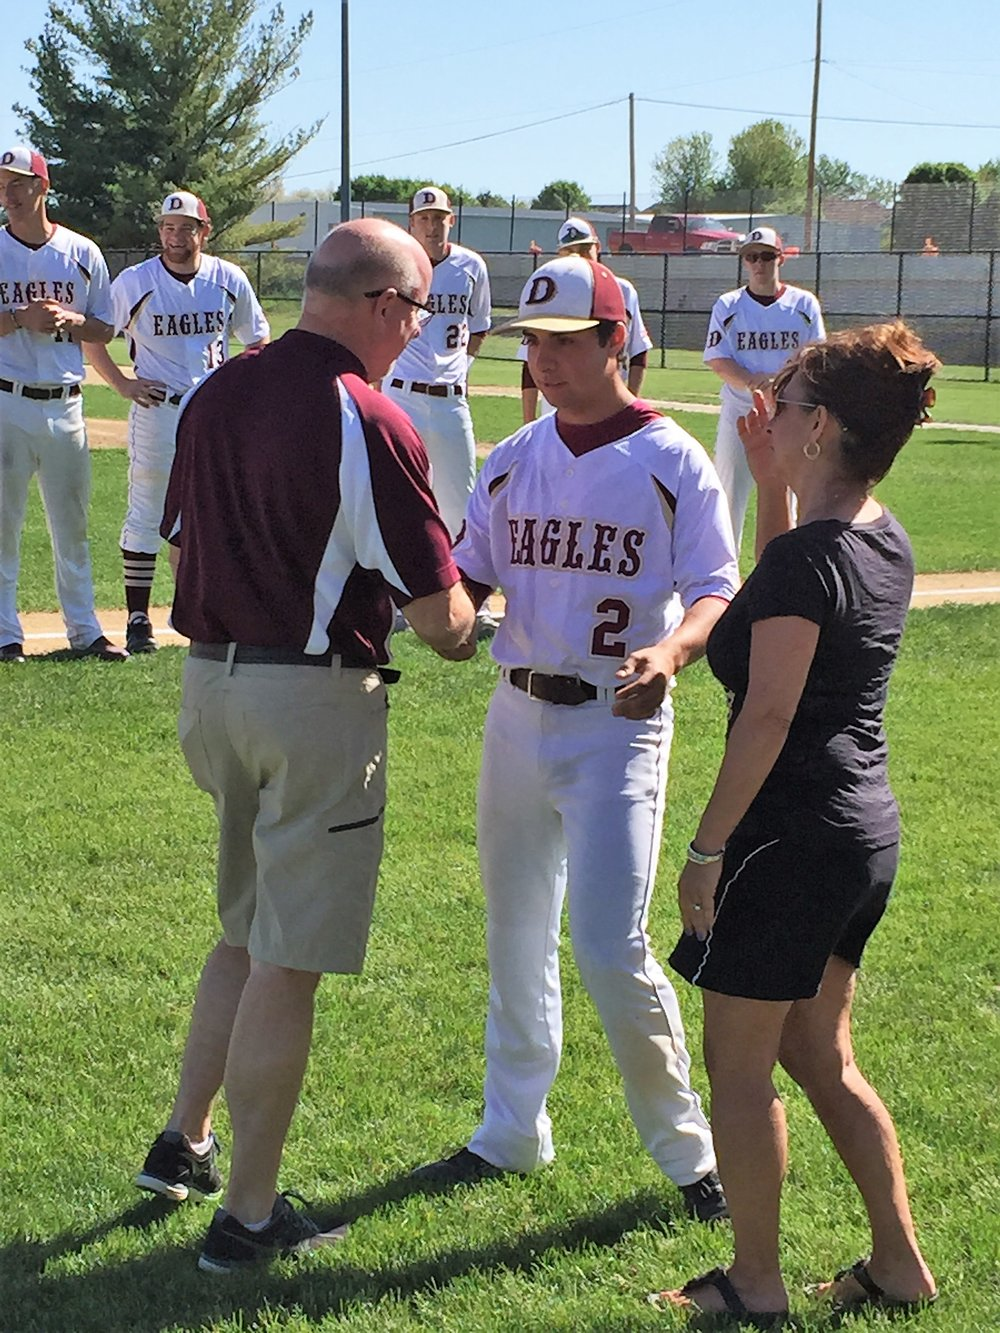 May 18, 2015. Ed and Theresa were so proud of Nick on Senior night.